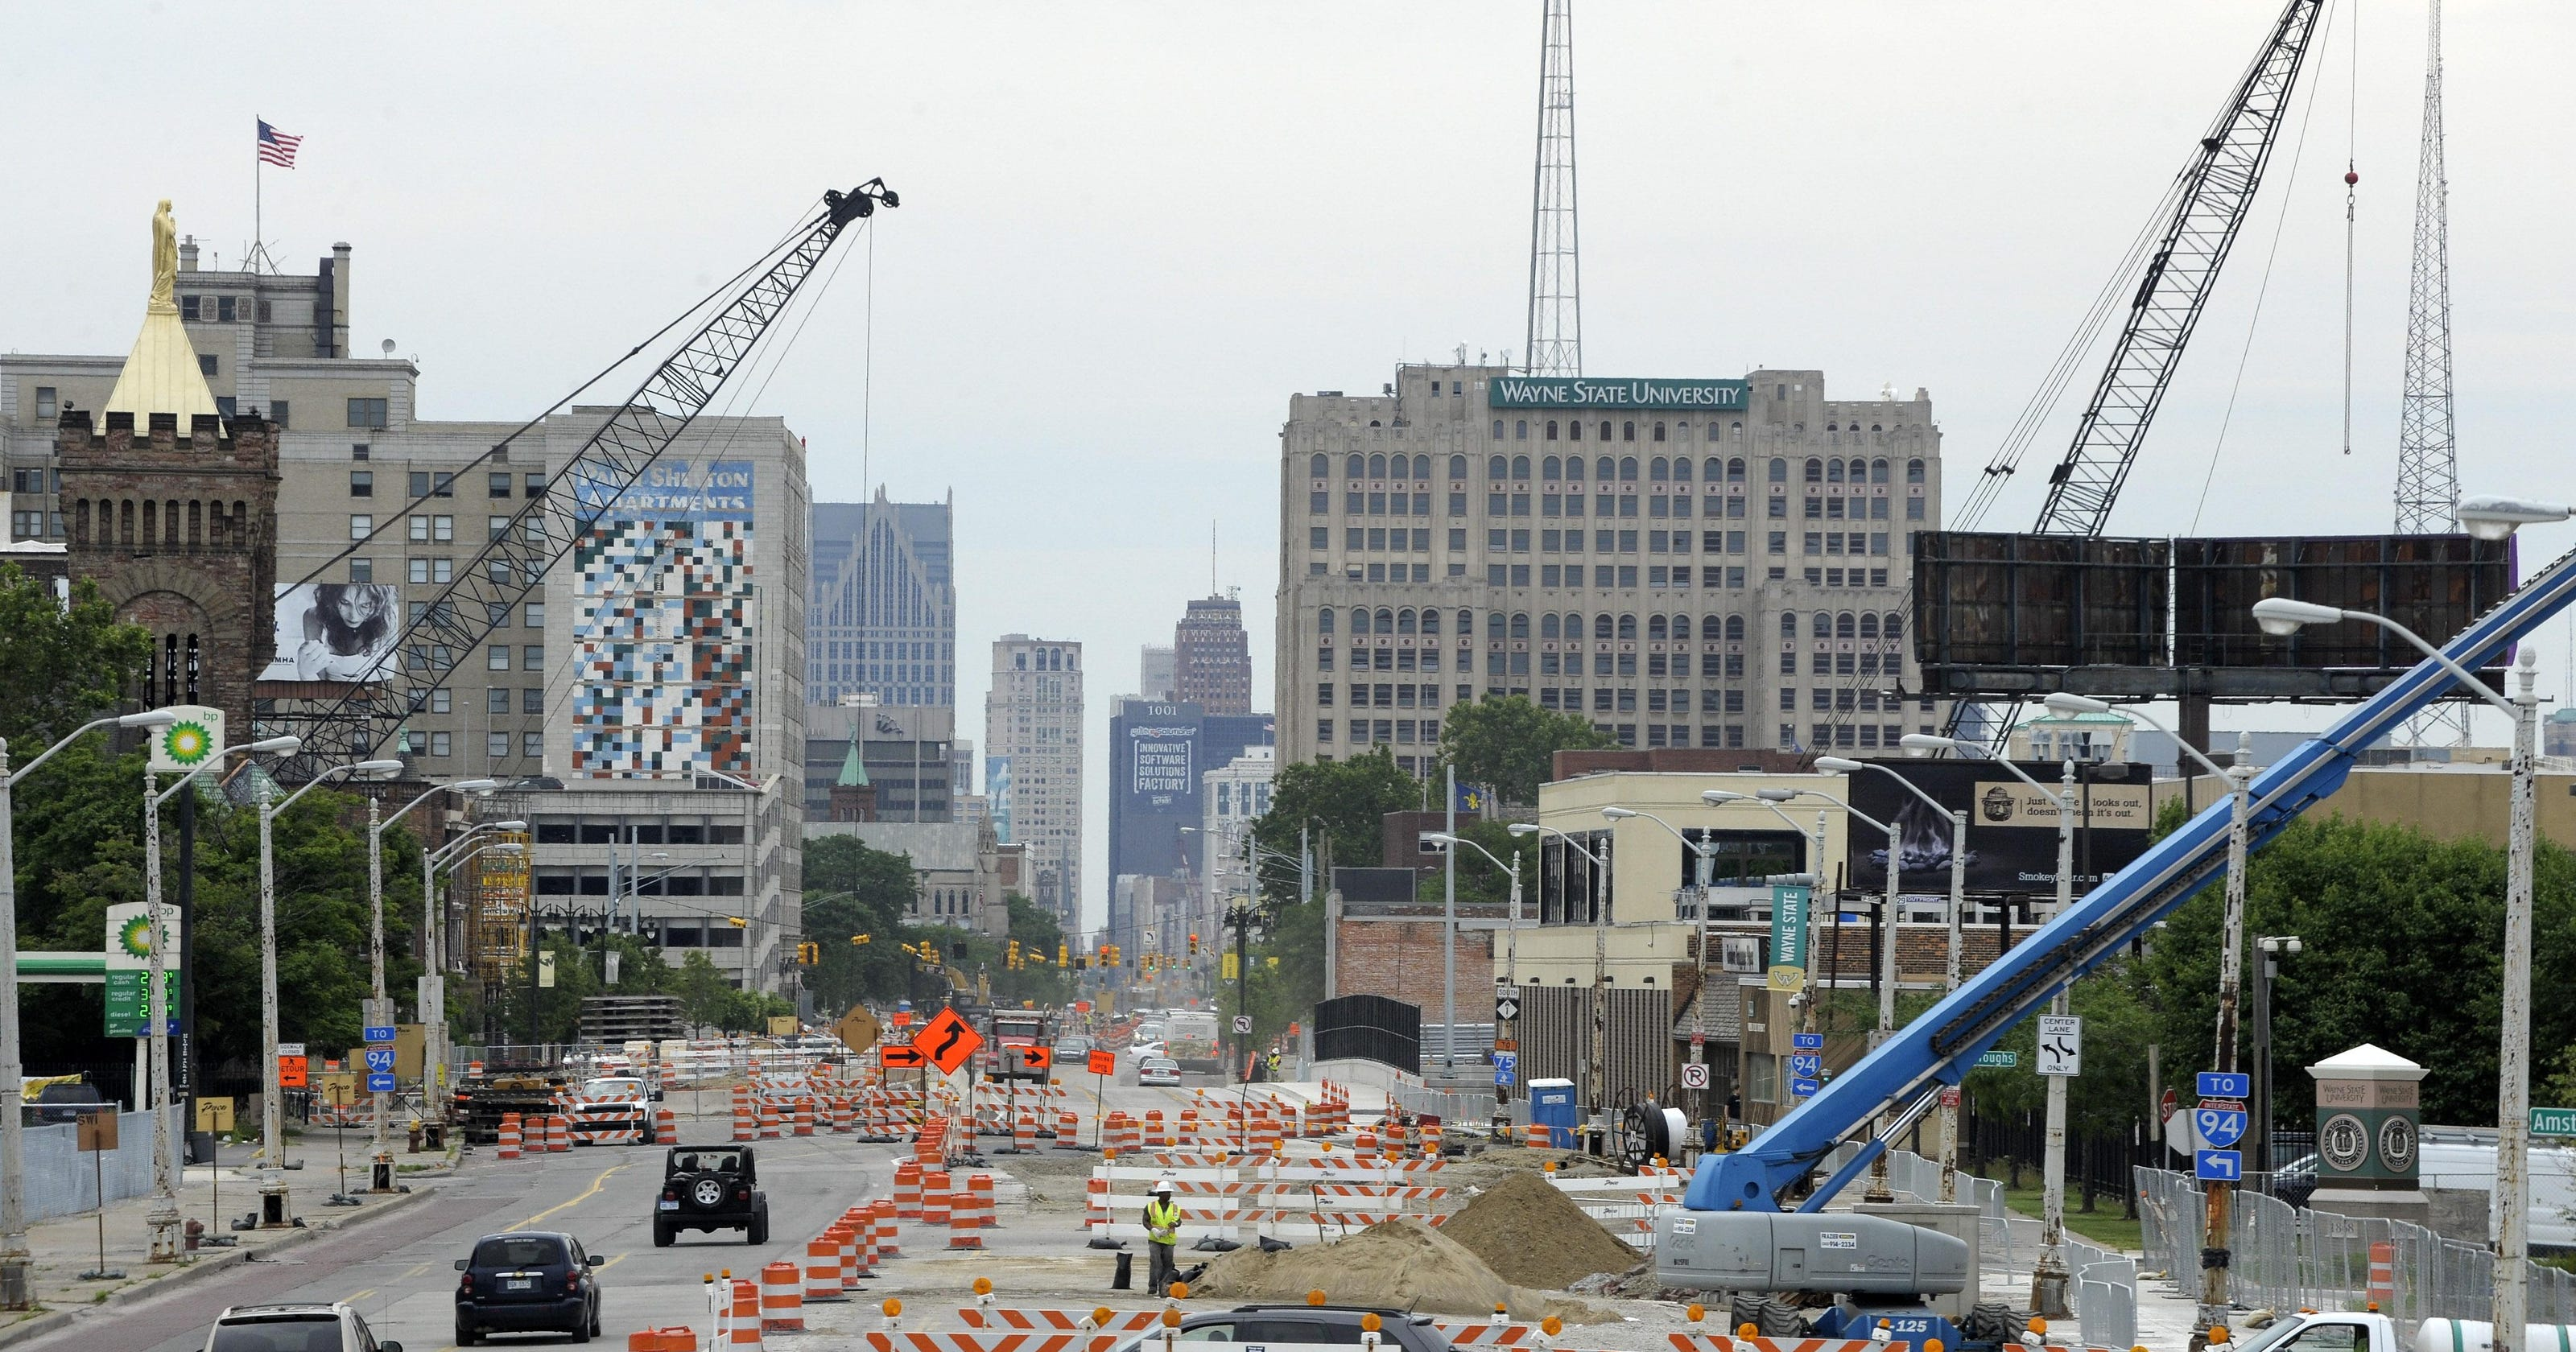 M-1 Rail helps get Woodward developments rolling in Detroit ee409ab3996